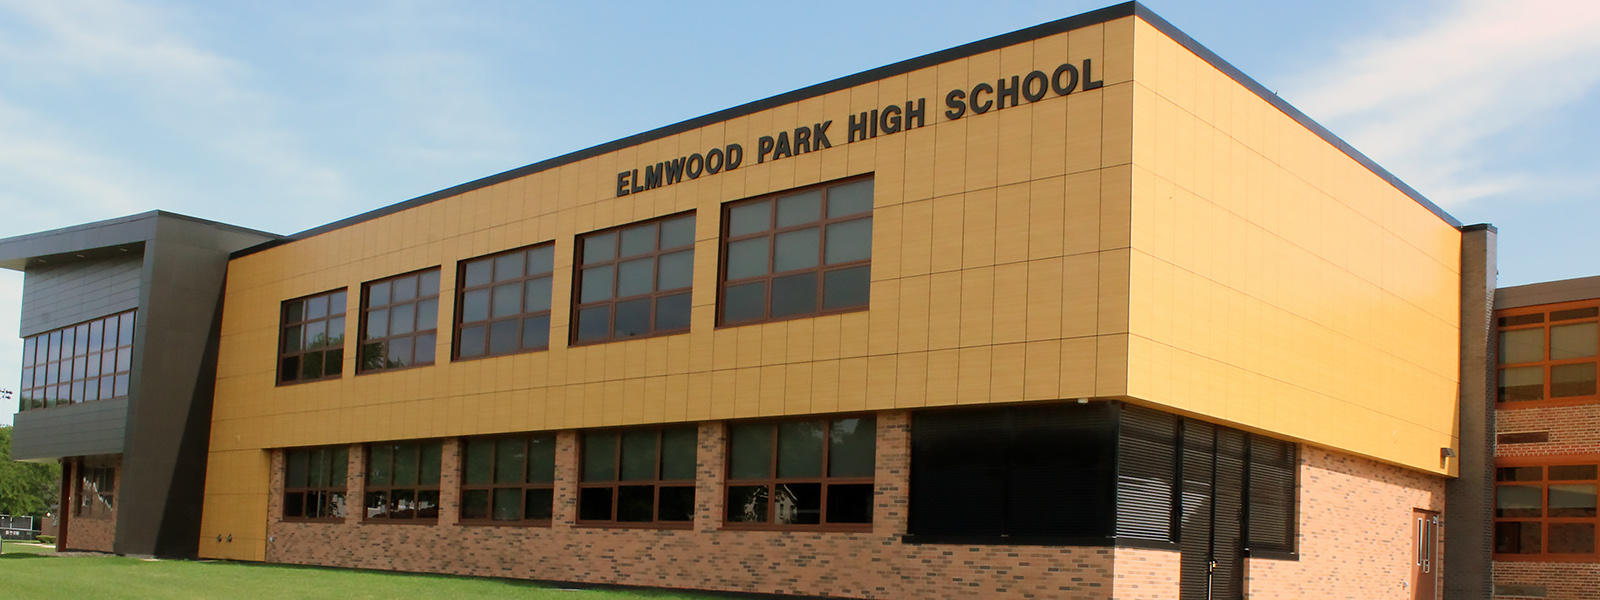 Elmwood Park High School